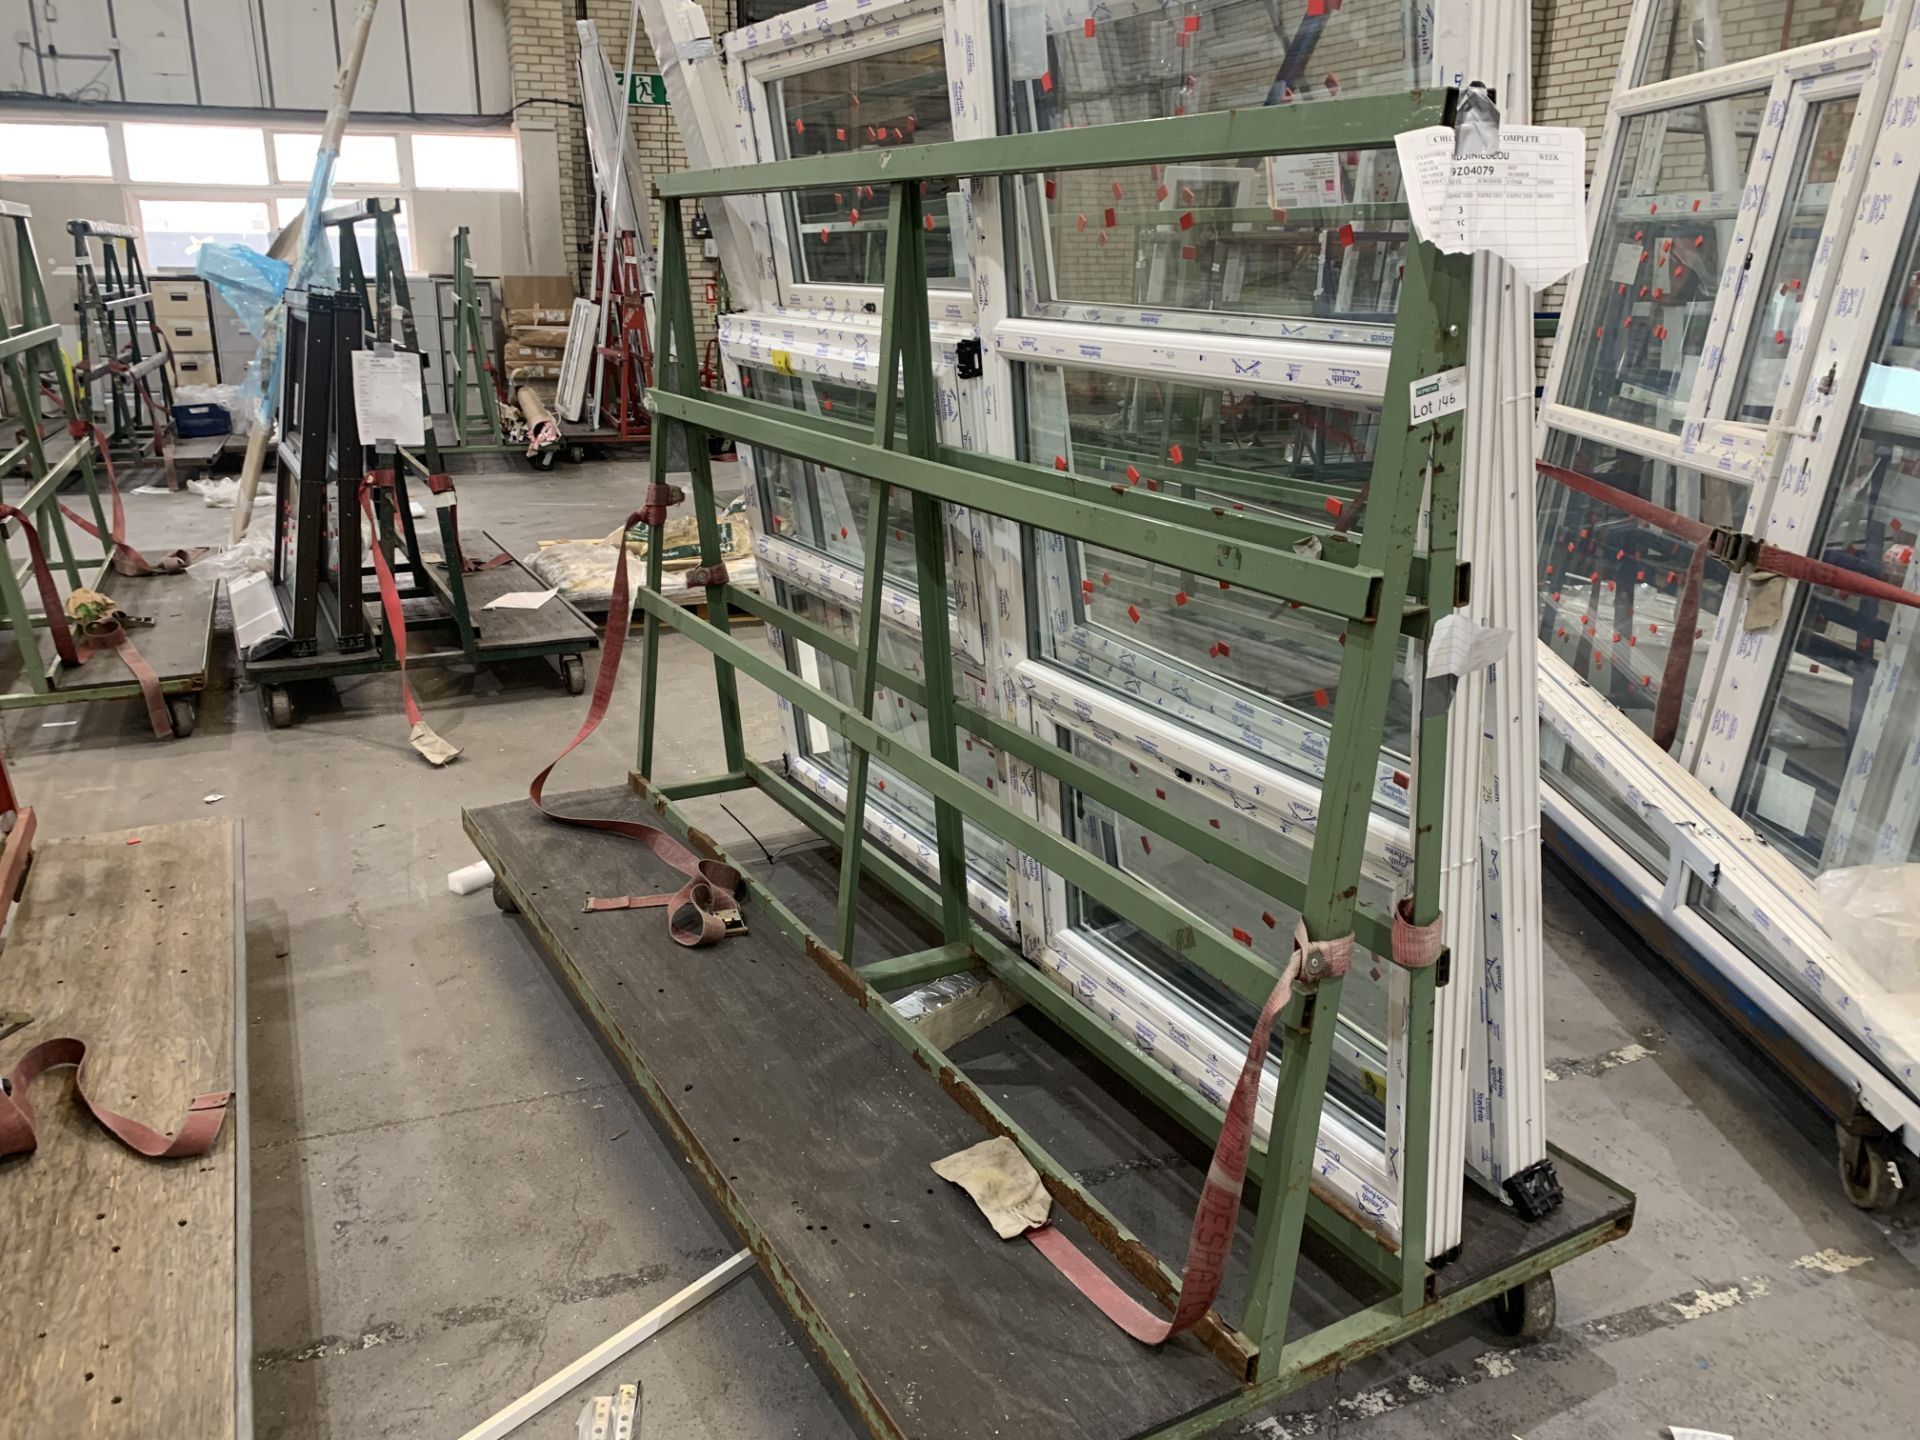 DOUBLE SIDED ACRA A FRAME WINDOW TROLLEY WITH WHEELS 245L X 170H X 120 WITH CONTENTS INCLUDING 4